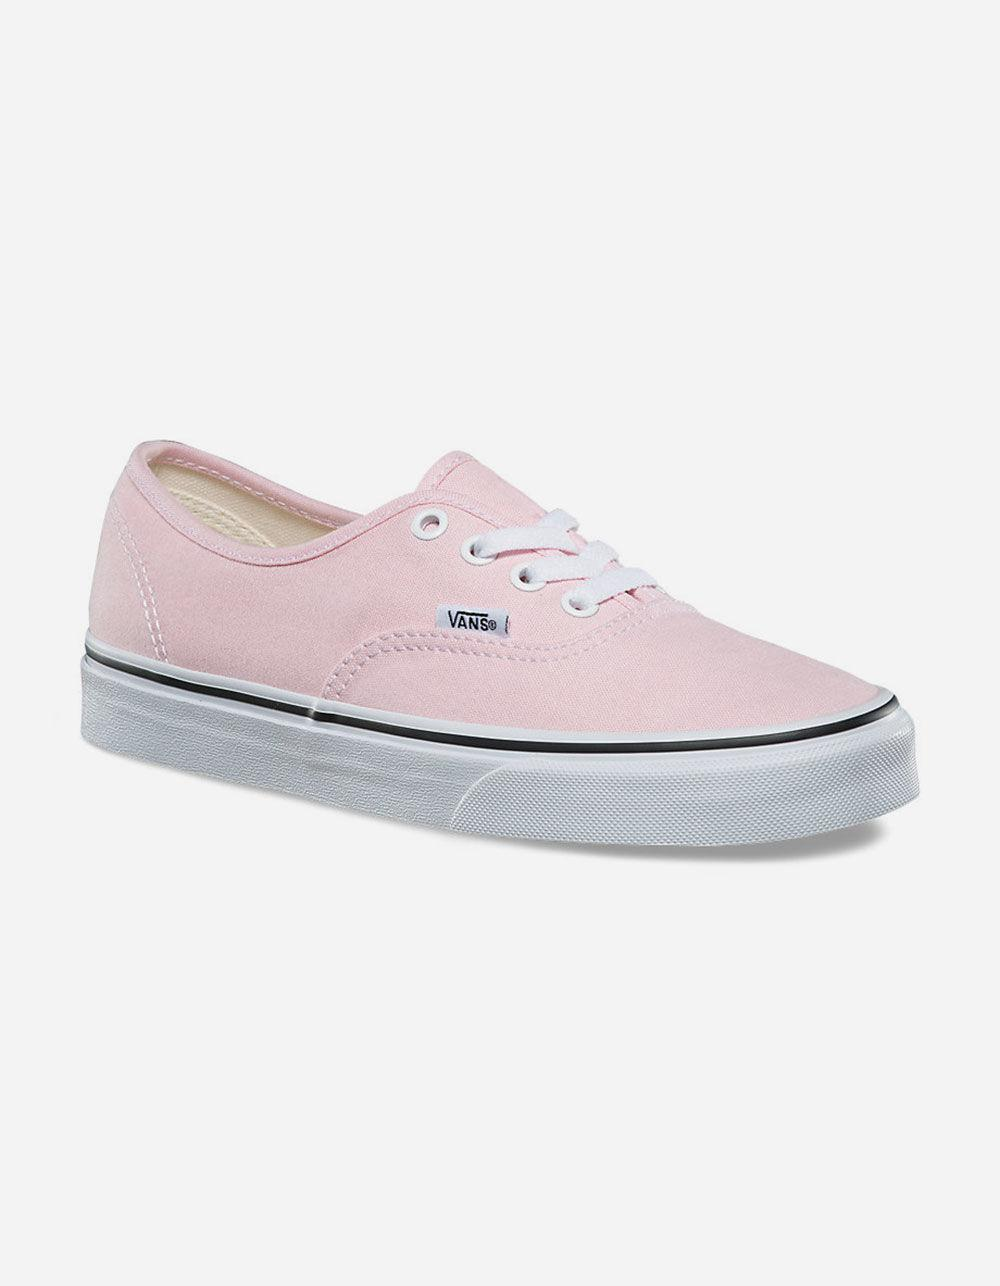 c079517fd71cec Lyst - Vans Authentic Chalk Pink   True White Womens Shoes